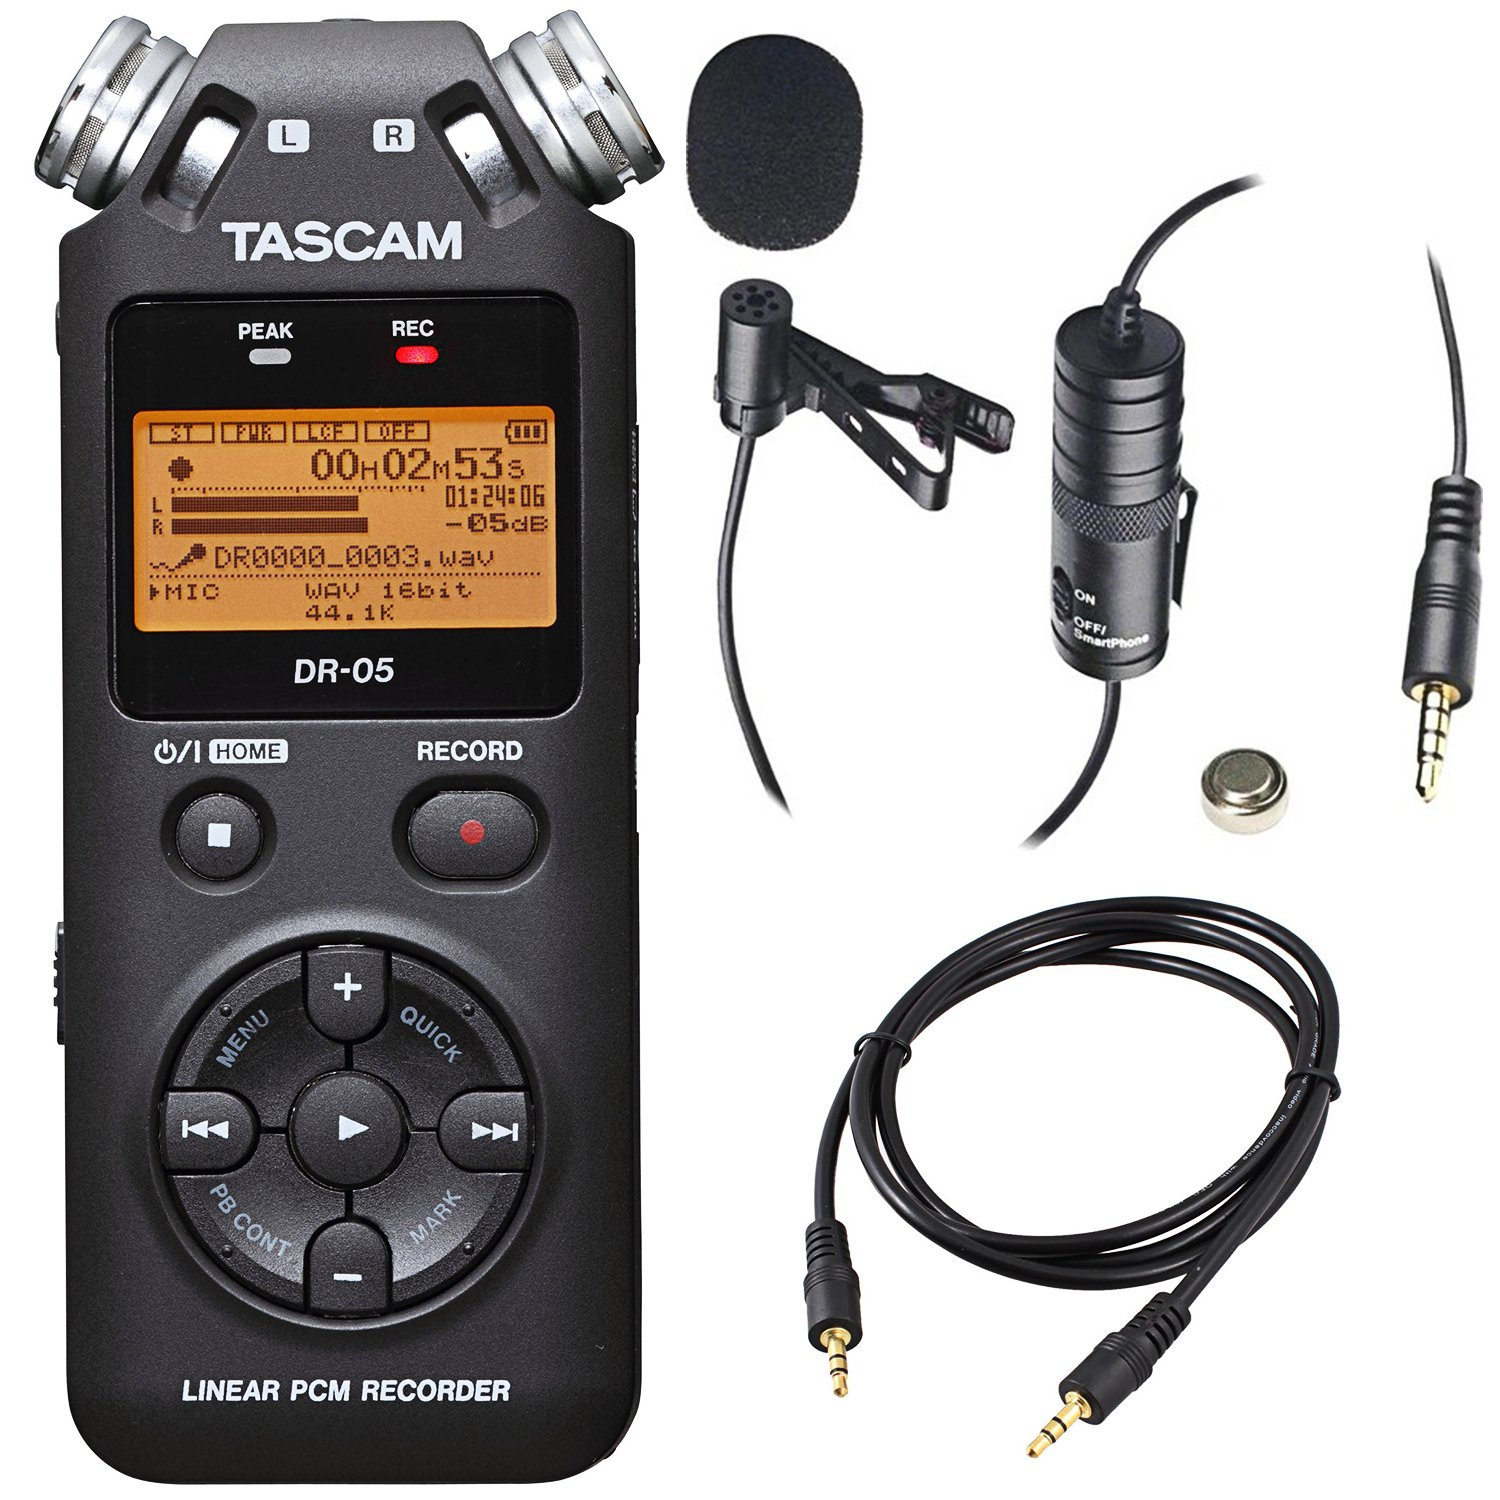 Tascam DR-05 (Version 2) Portable Handheld Digital Audio Recorder (Black) with Deluxe accessory bundle by Tascam (Image #1)